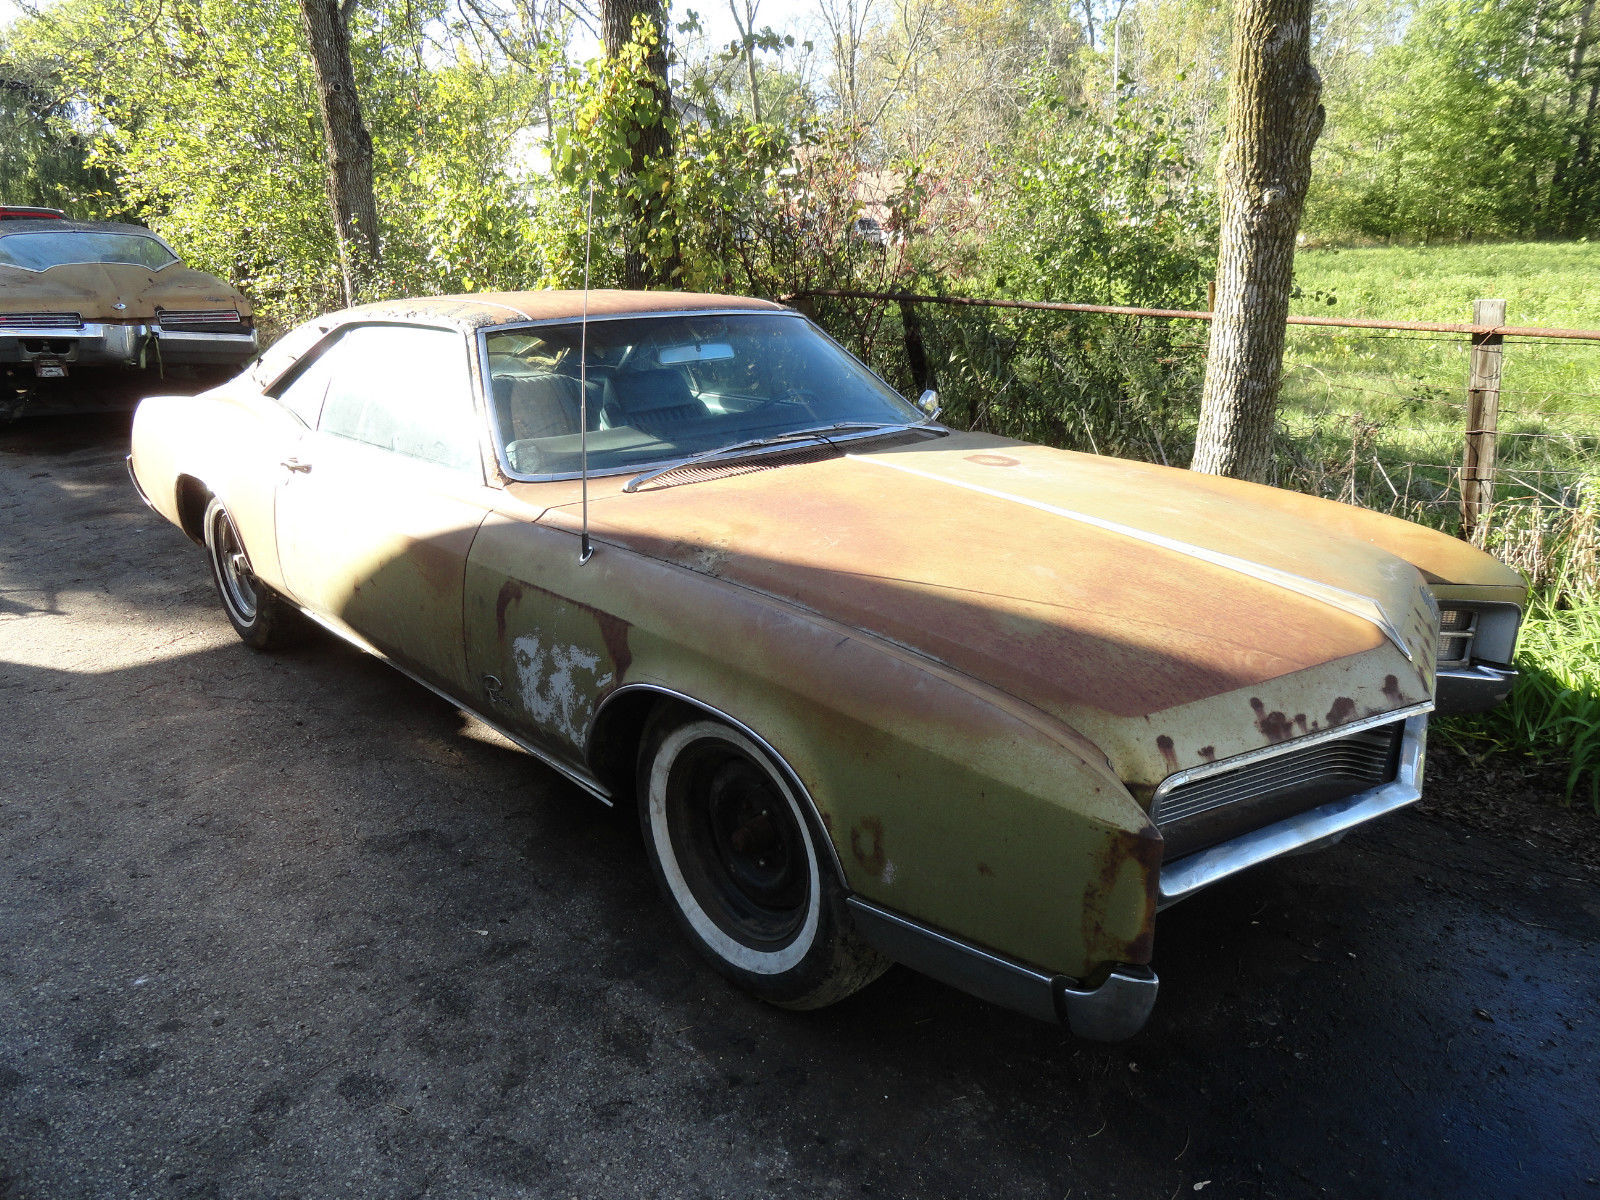 1967 Buick Riviera Project Car For Sale